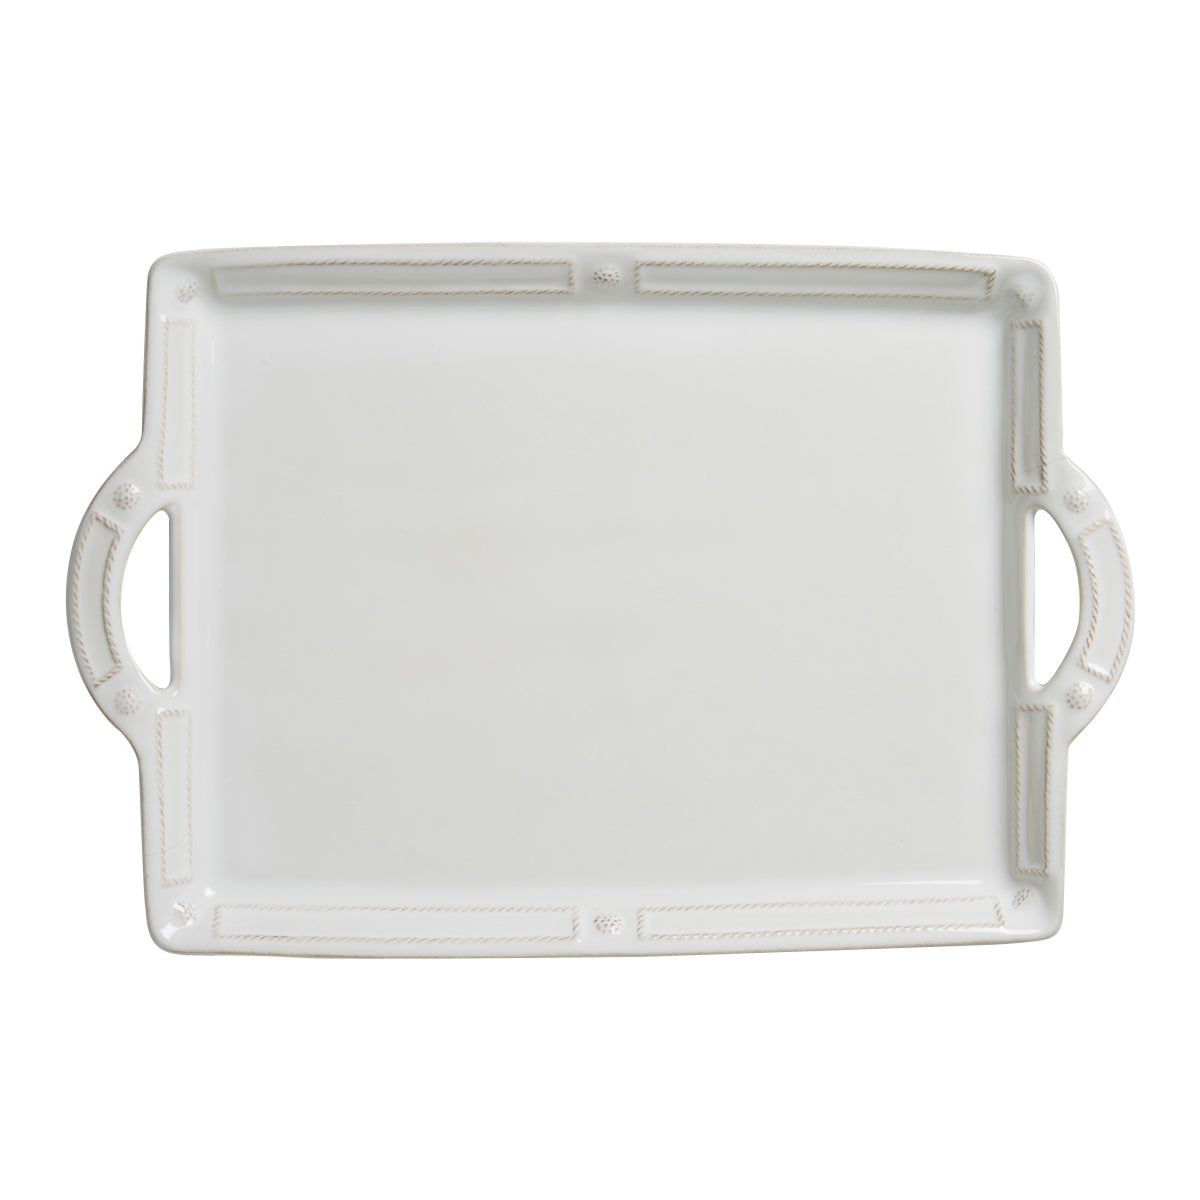 Berry & Thread French Panel Handled Tray